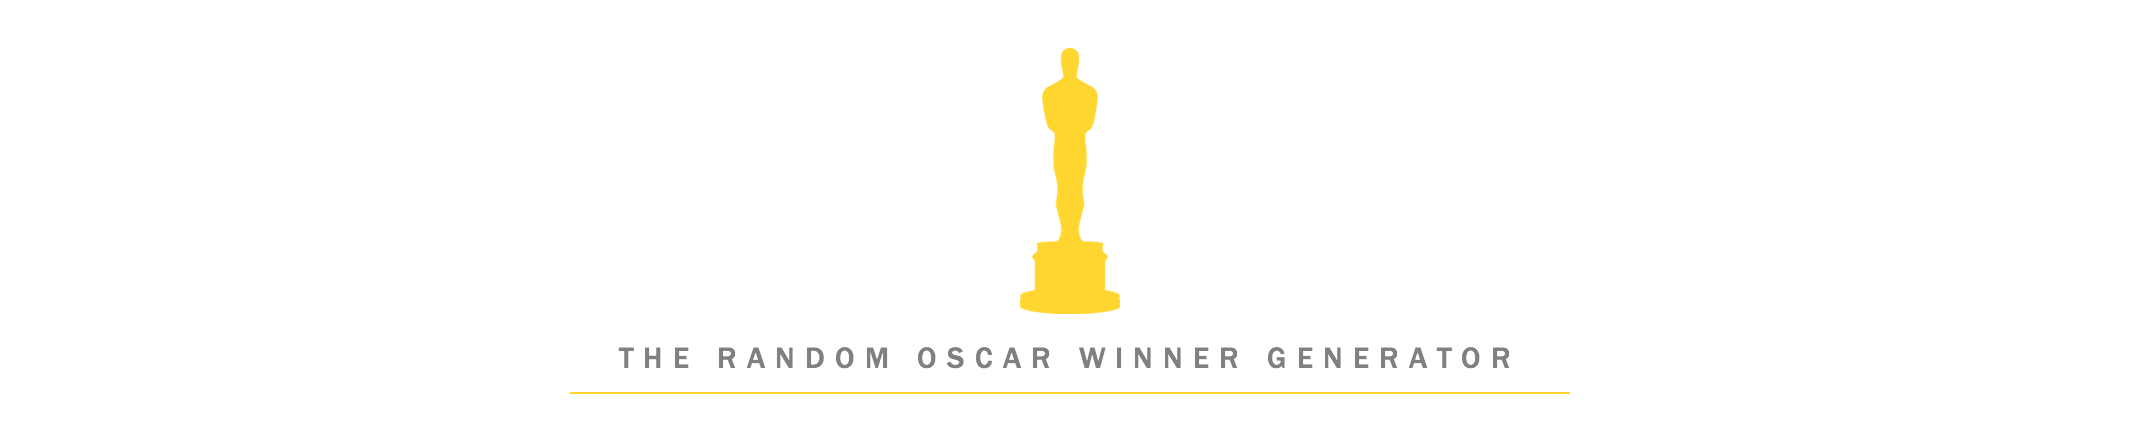 Kim Cattrall To Star In Private Lives besides Howto Lego Cake 0115423 moreover 88th Academy Awards likewise The Random Oscar Winner Generator also Out Actor Gavin Creel Of The Musical Hair Is Among The 2009 Tony Nominees 4443. on oscar nominees announced